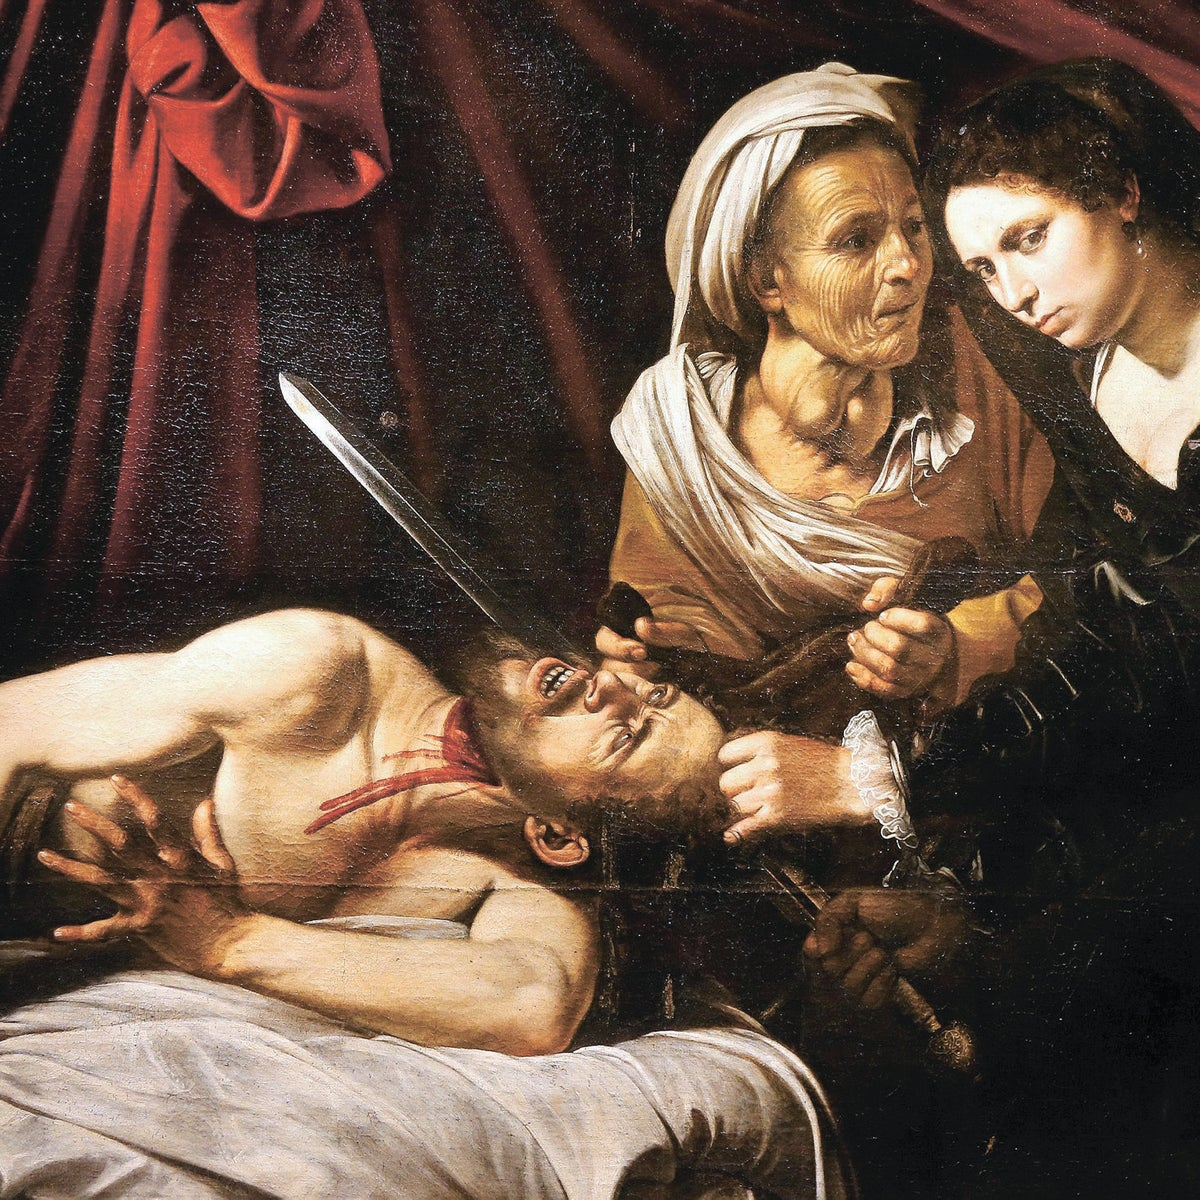 The Gauls didn't invent this wheel: Judith Beheading Holofernes, possibly painted by Caravaggio (1571-1610), based on the story in the deuterocanonical Book of Judith